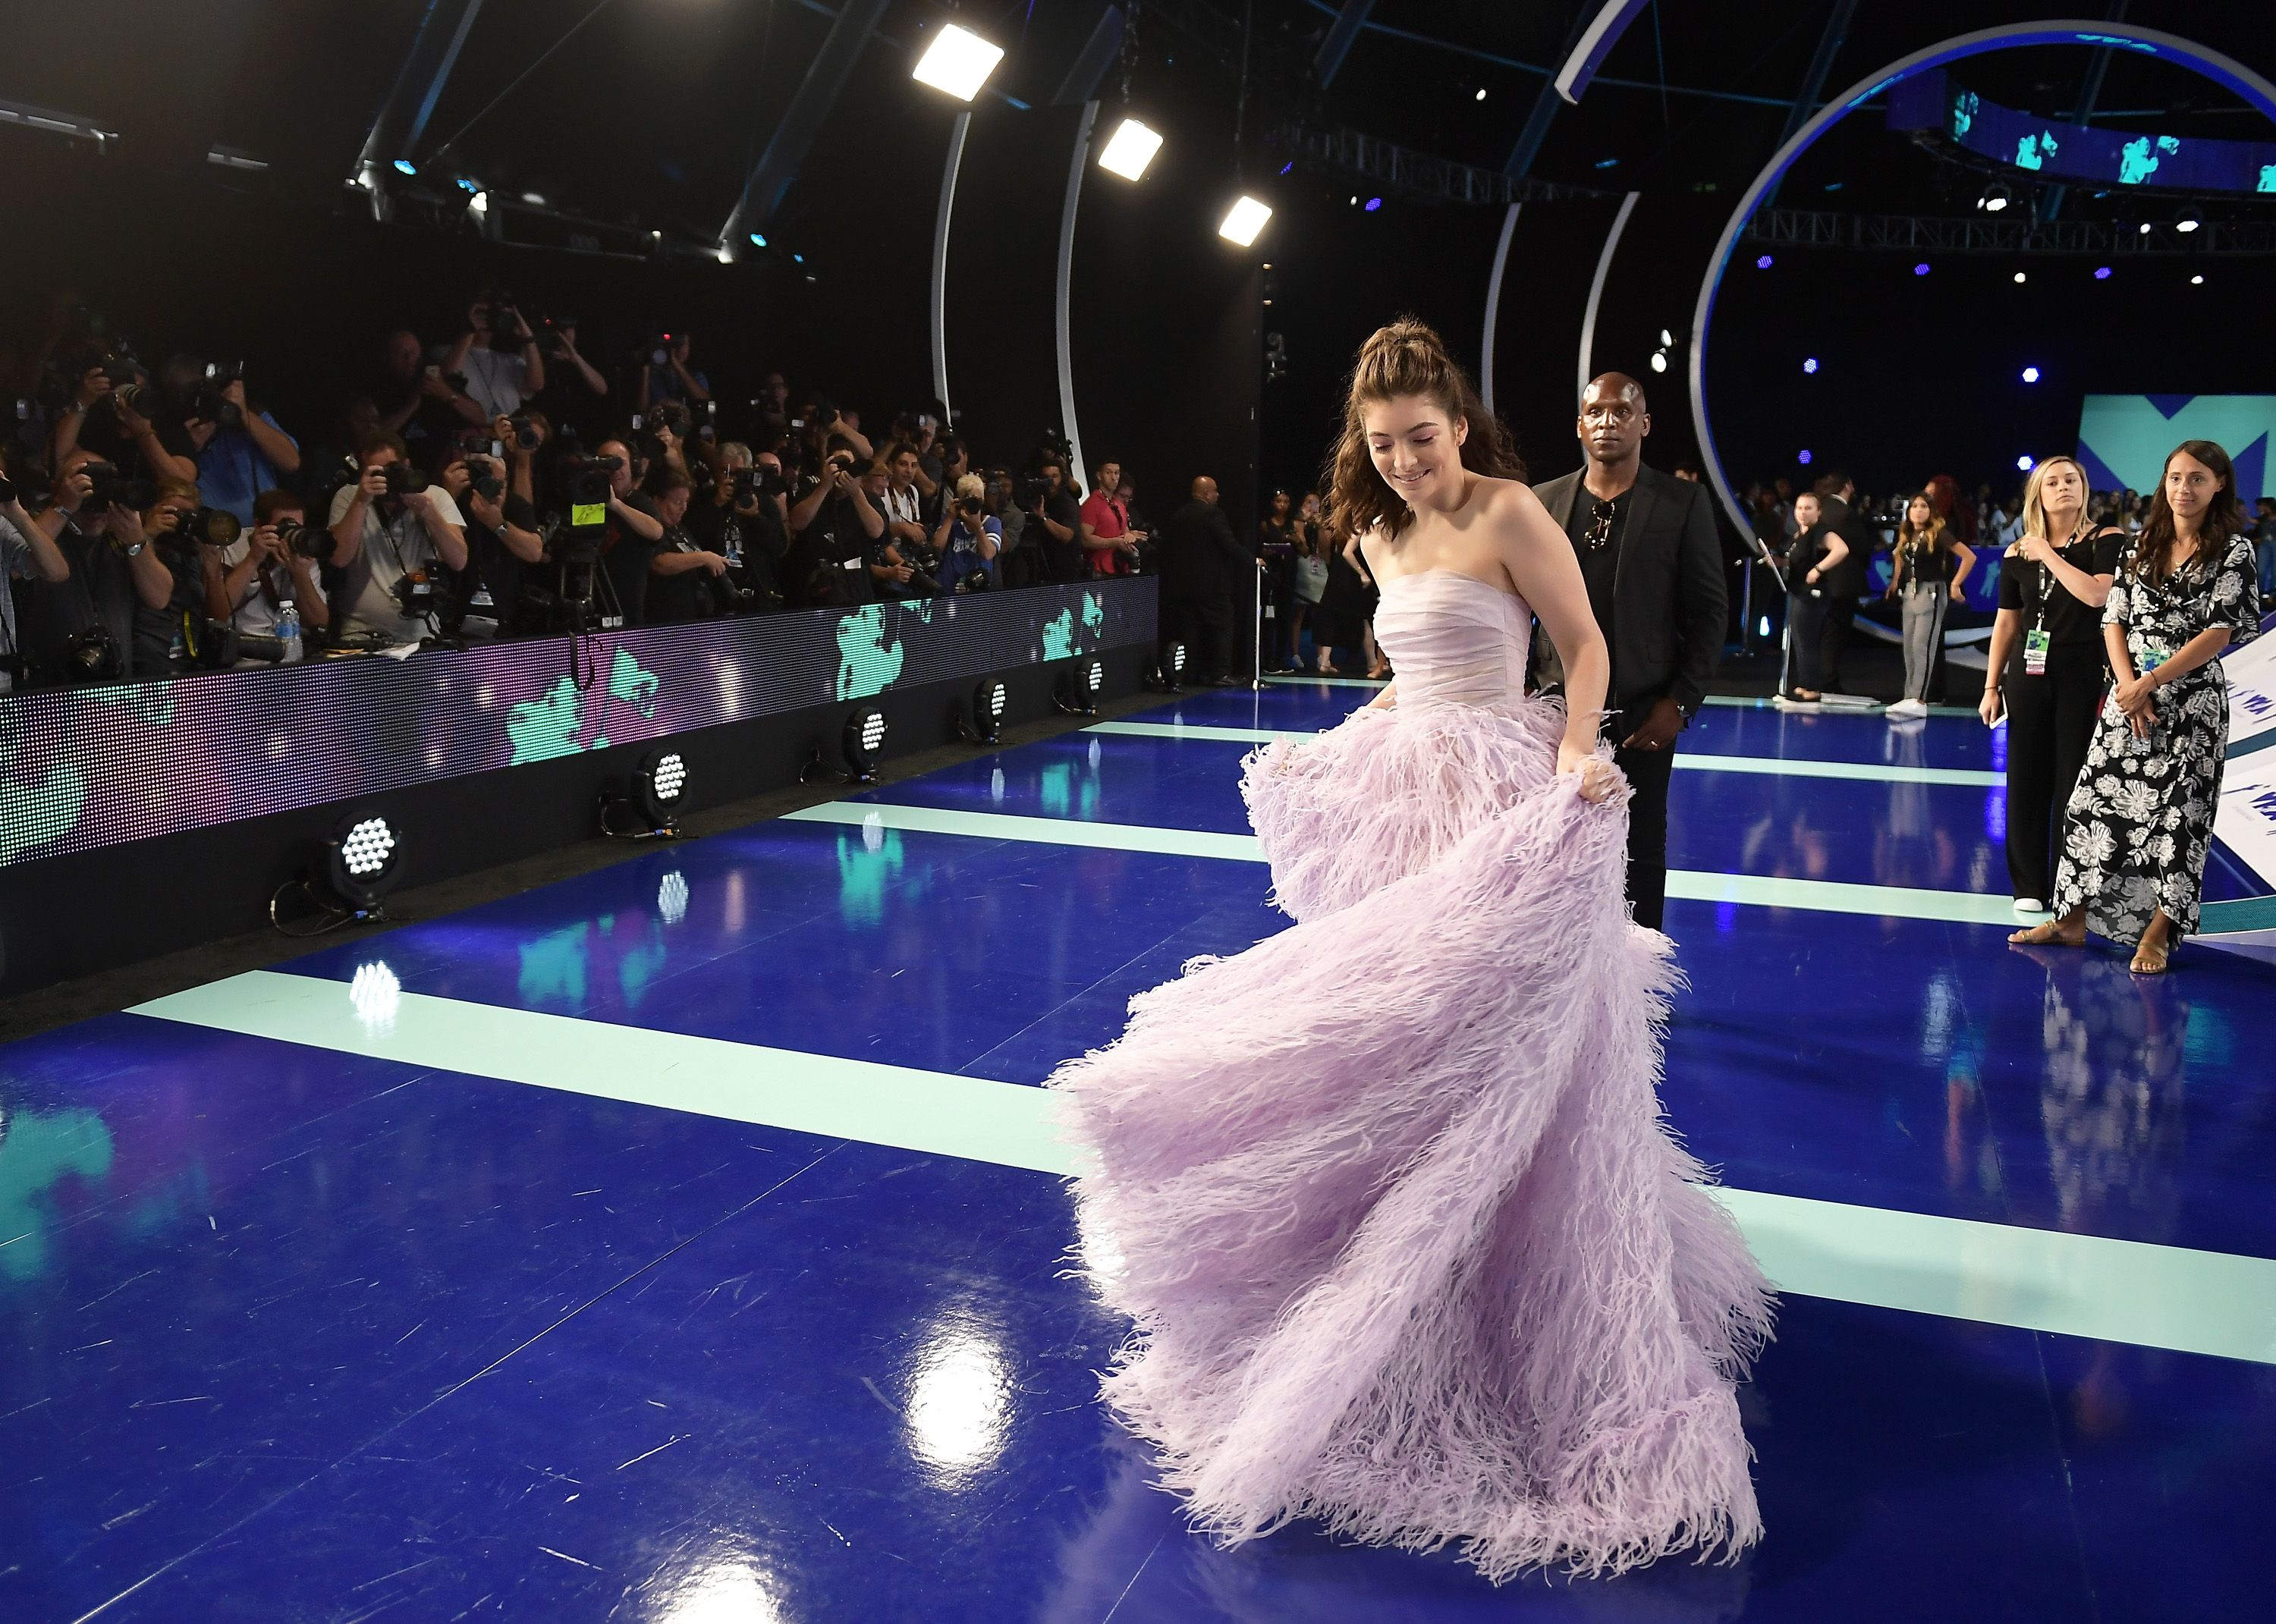 The Best Reactions to Lorde's Dancing at the VMAs